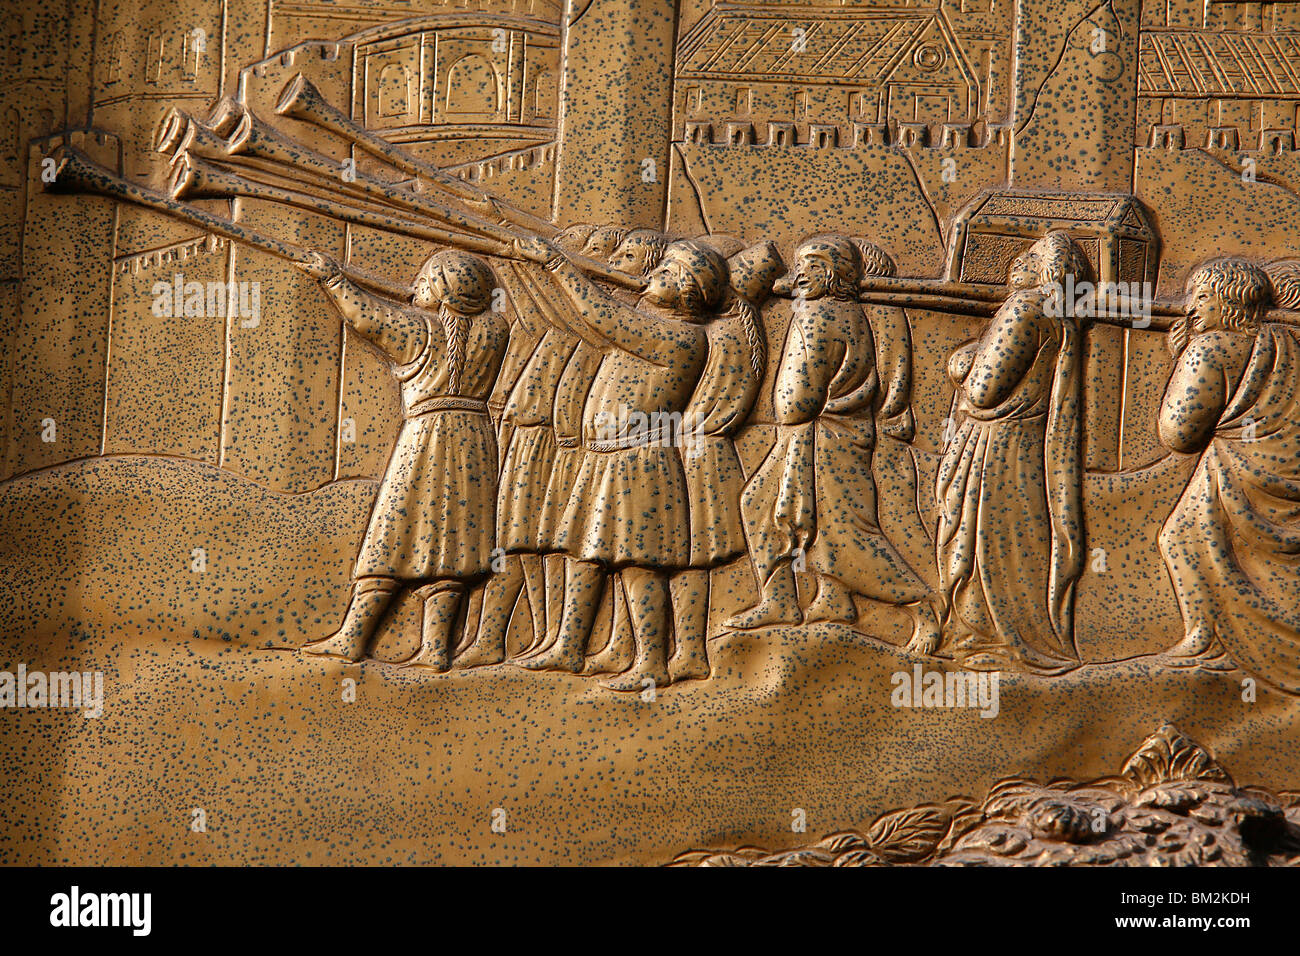 Depiction of the Walls of Jericho on the Gate of Paradise door of the Baptistry of San Giovanni, Florence, Italy - Stock Image